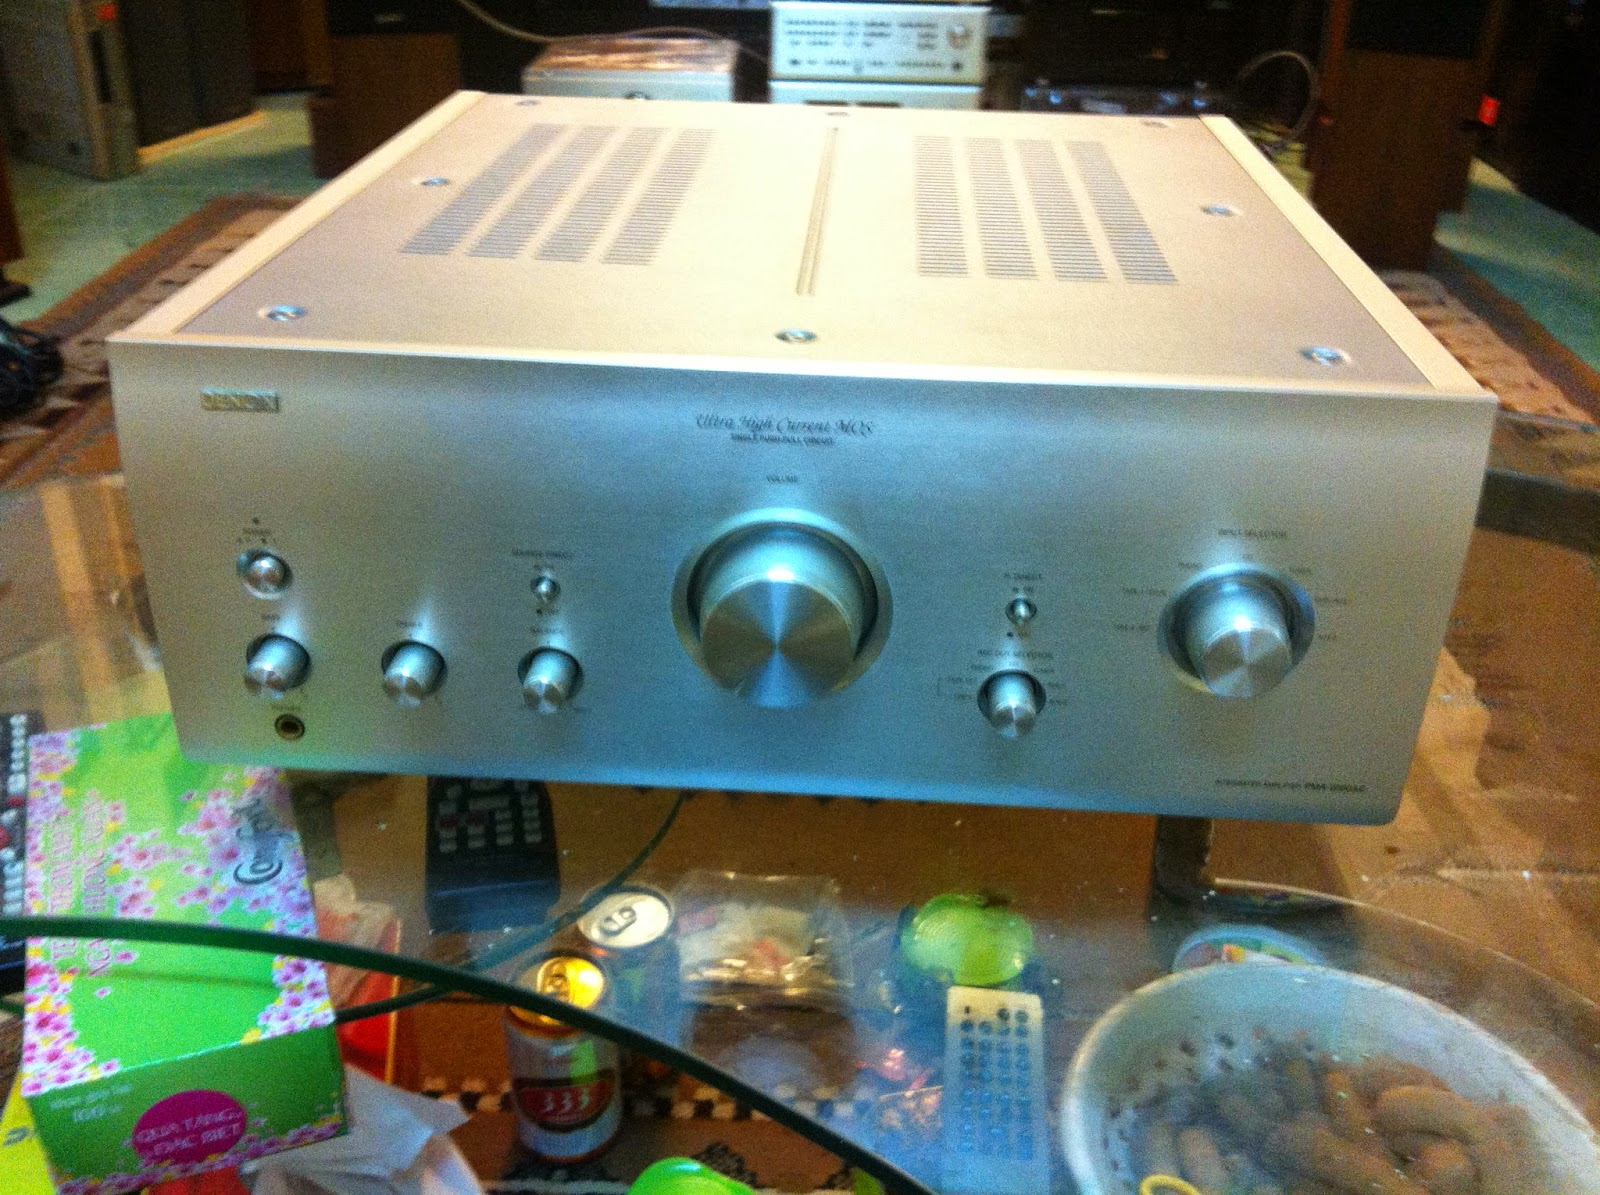 Amply Denon 2000 AE - Made in Japan